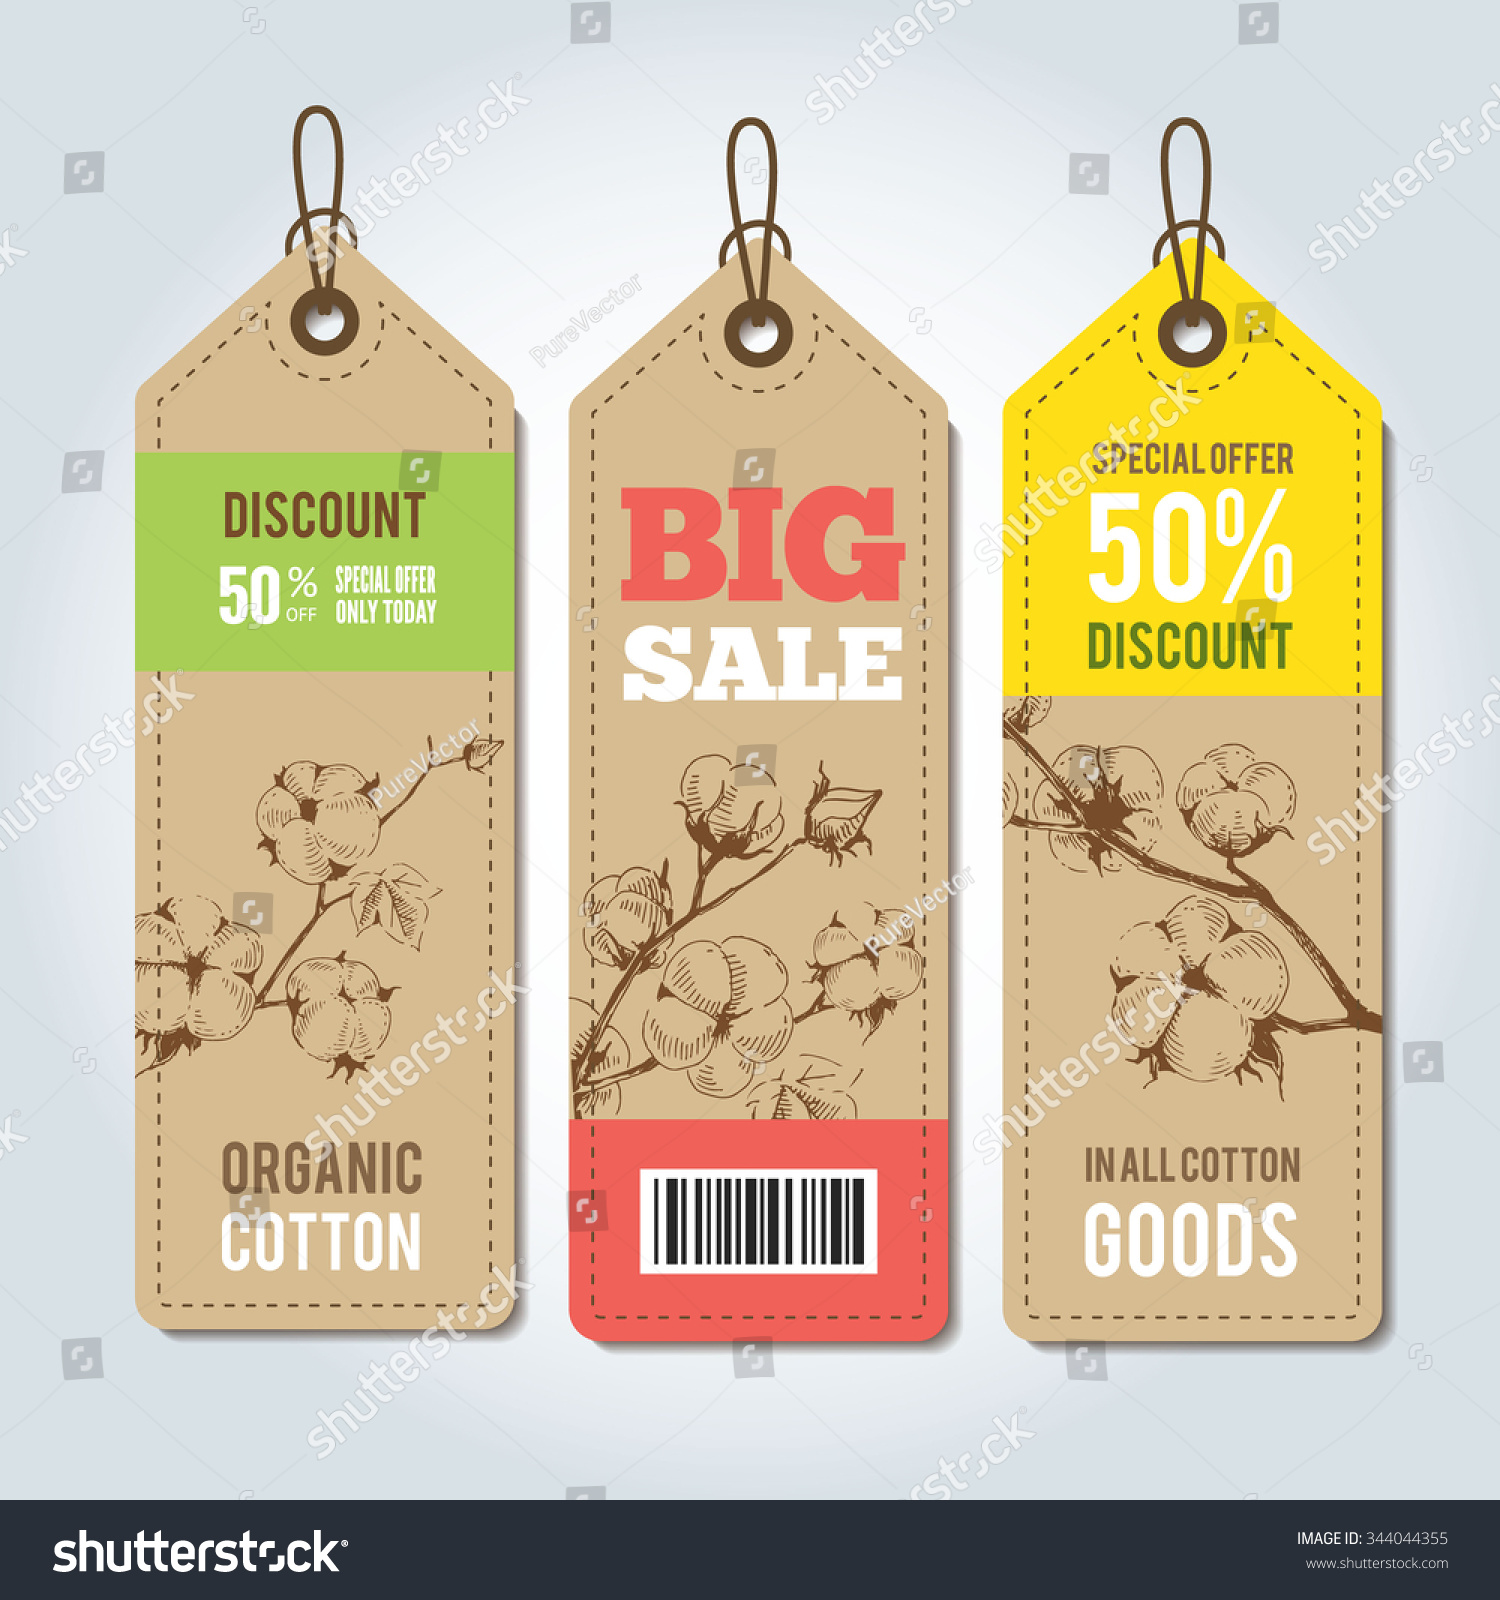 Vector Tags Clothing Template Natural Cotton Vector – Clothing Tag Template